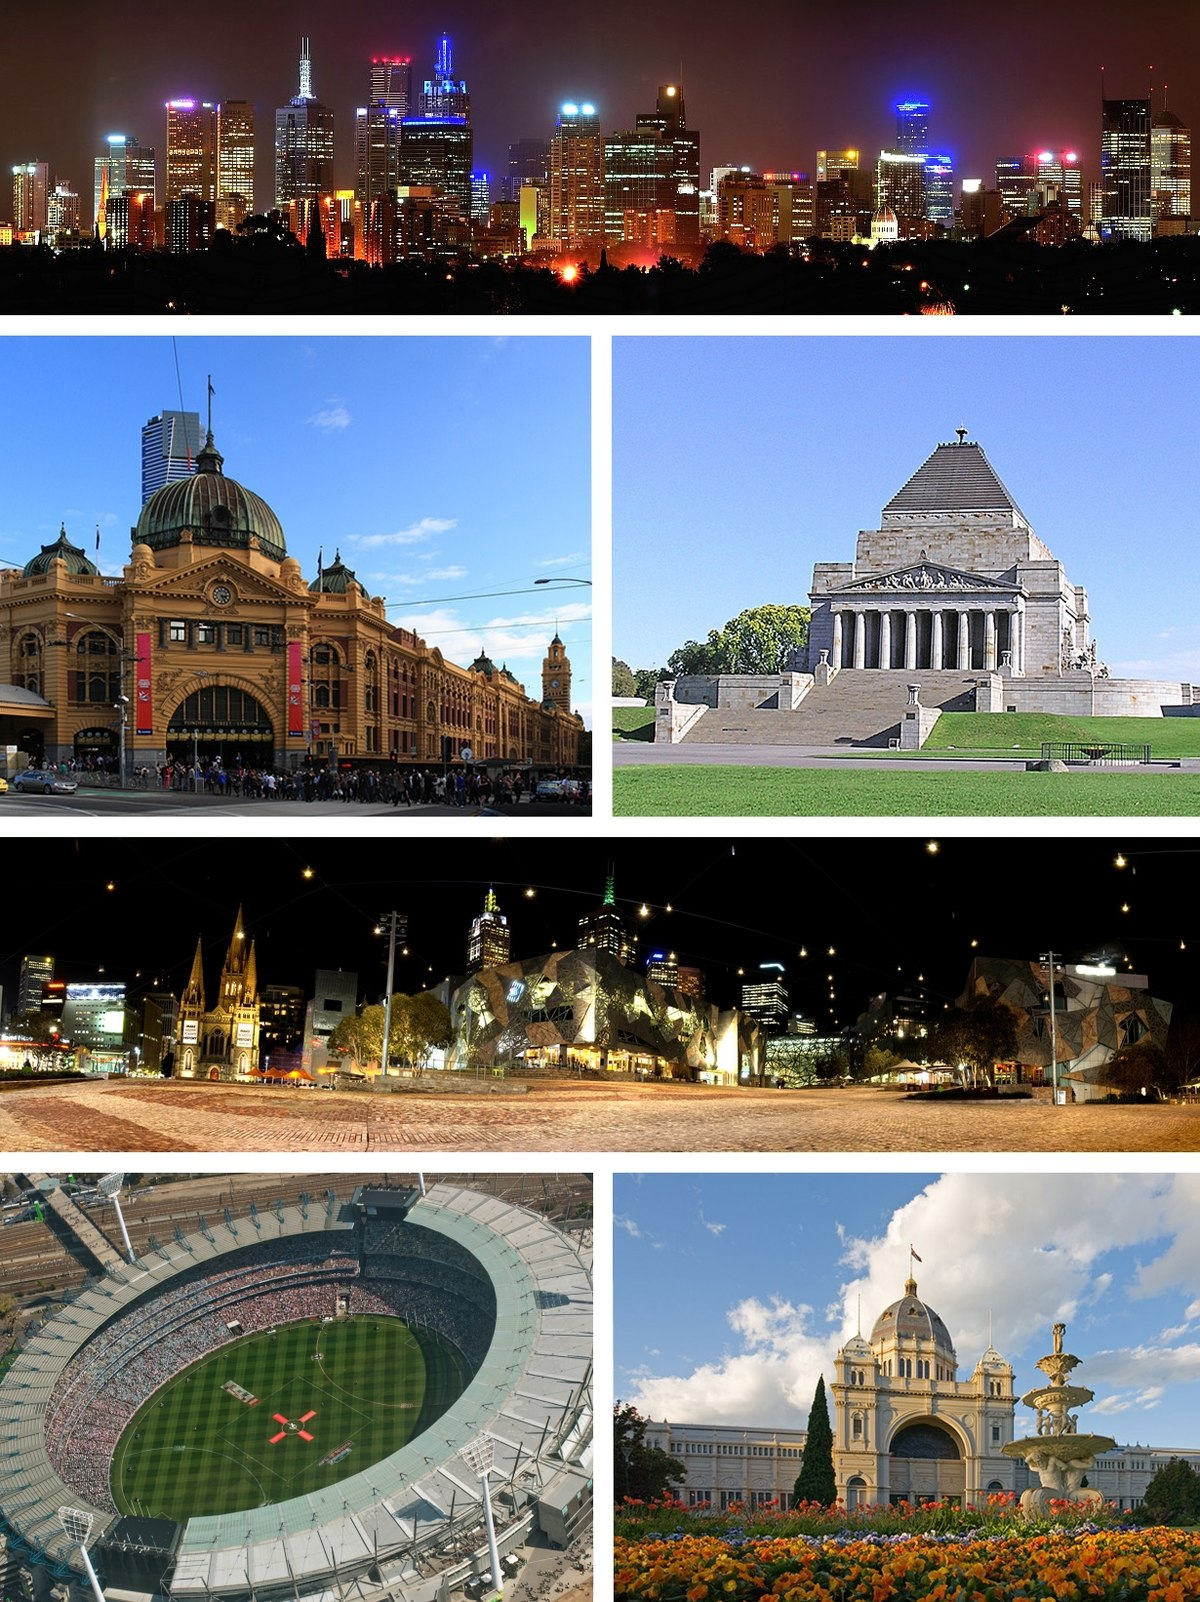 Melbourne wikipedia - Australian tourism office ...